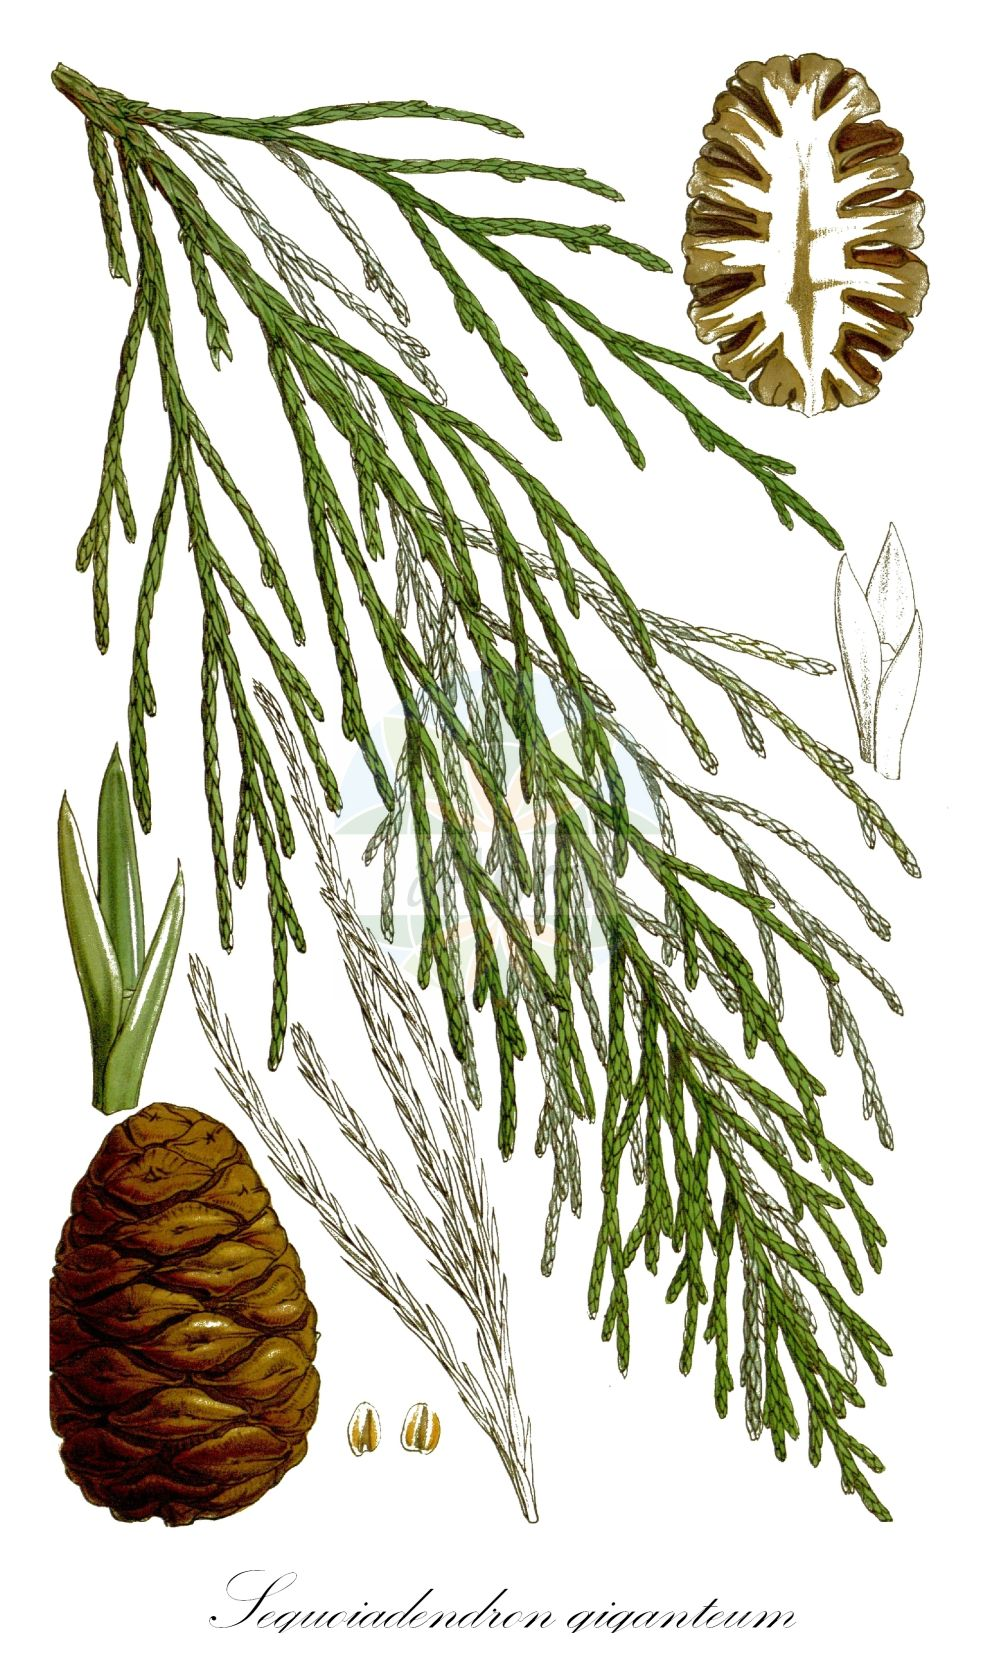 Historische Abbildung von Sequoiadendron giganteum (Riesenmammutbaum - Wellingtonia). Das Bild zeigt Blatt, Bluete, Frucht und Same. ---- Historical Drawing of Sequoiadendron giganteum (Riesenmammutbaum - Wellingtonia).The image is showing leaf, flower, fruit and seed.(Sequoiadendron giganteum,Riesenmammutbaum,Wellingtonia,Wellingtonia gigantea,Big Tree,Giant Redwood,Giant Sequoia,Mammoth Tree,Sierra Redwood,Sequoiadendron,Riesenmammutbaum,Sequoia,Cupressaceae,Zypressengewaechse,Cypress family,Blatt,Bluete,Frucht,Same,leaf,flower,fruit,seed,Fitch (1854))